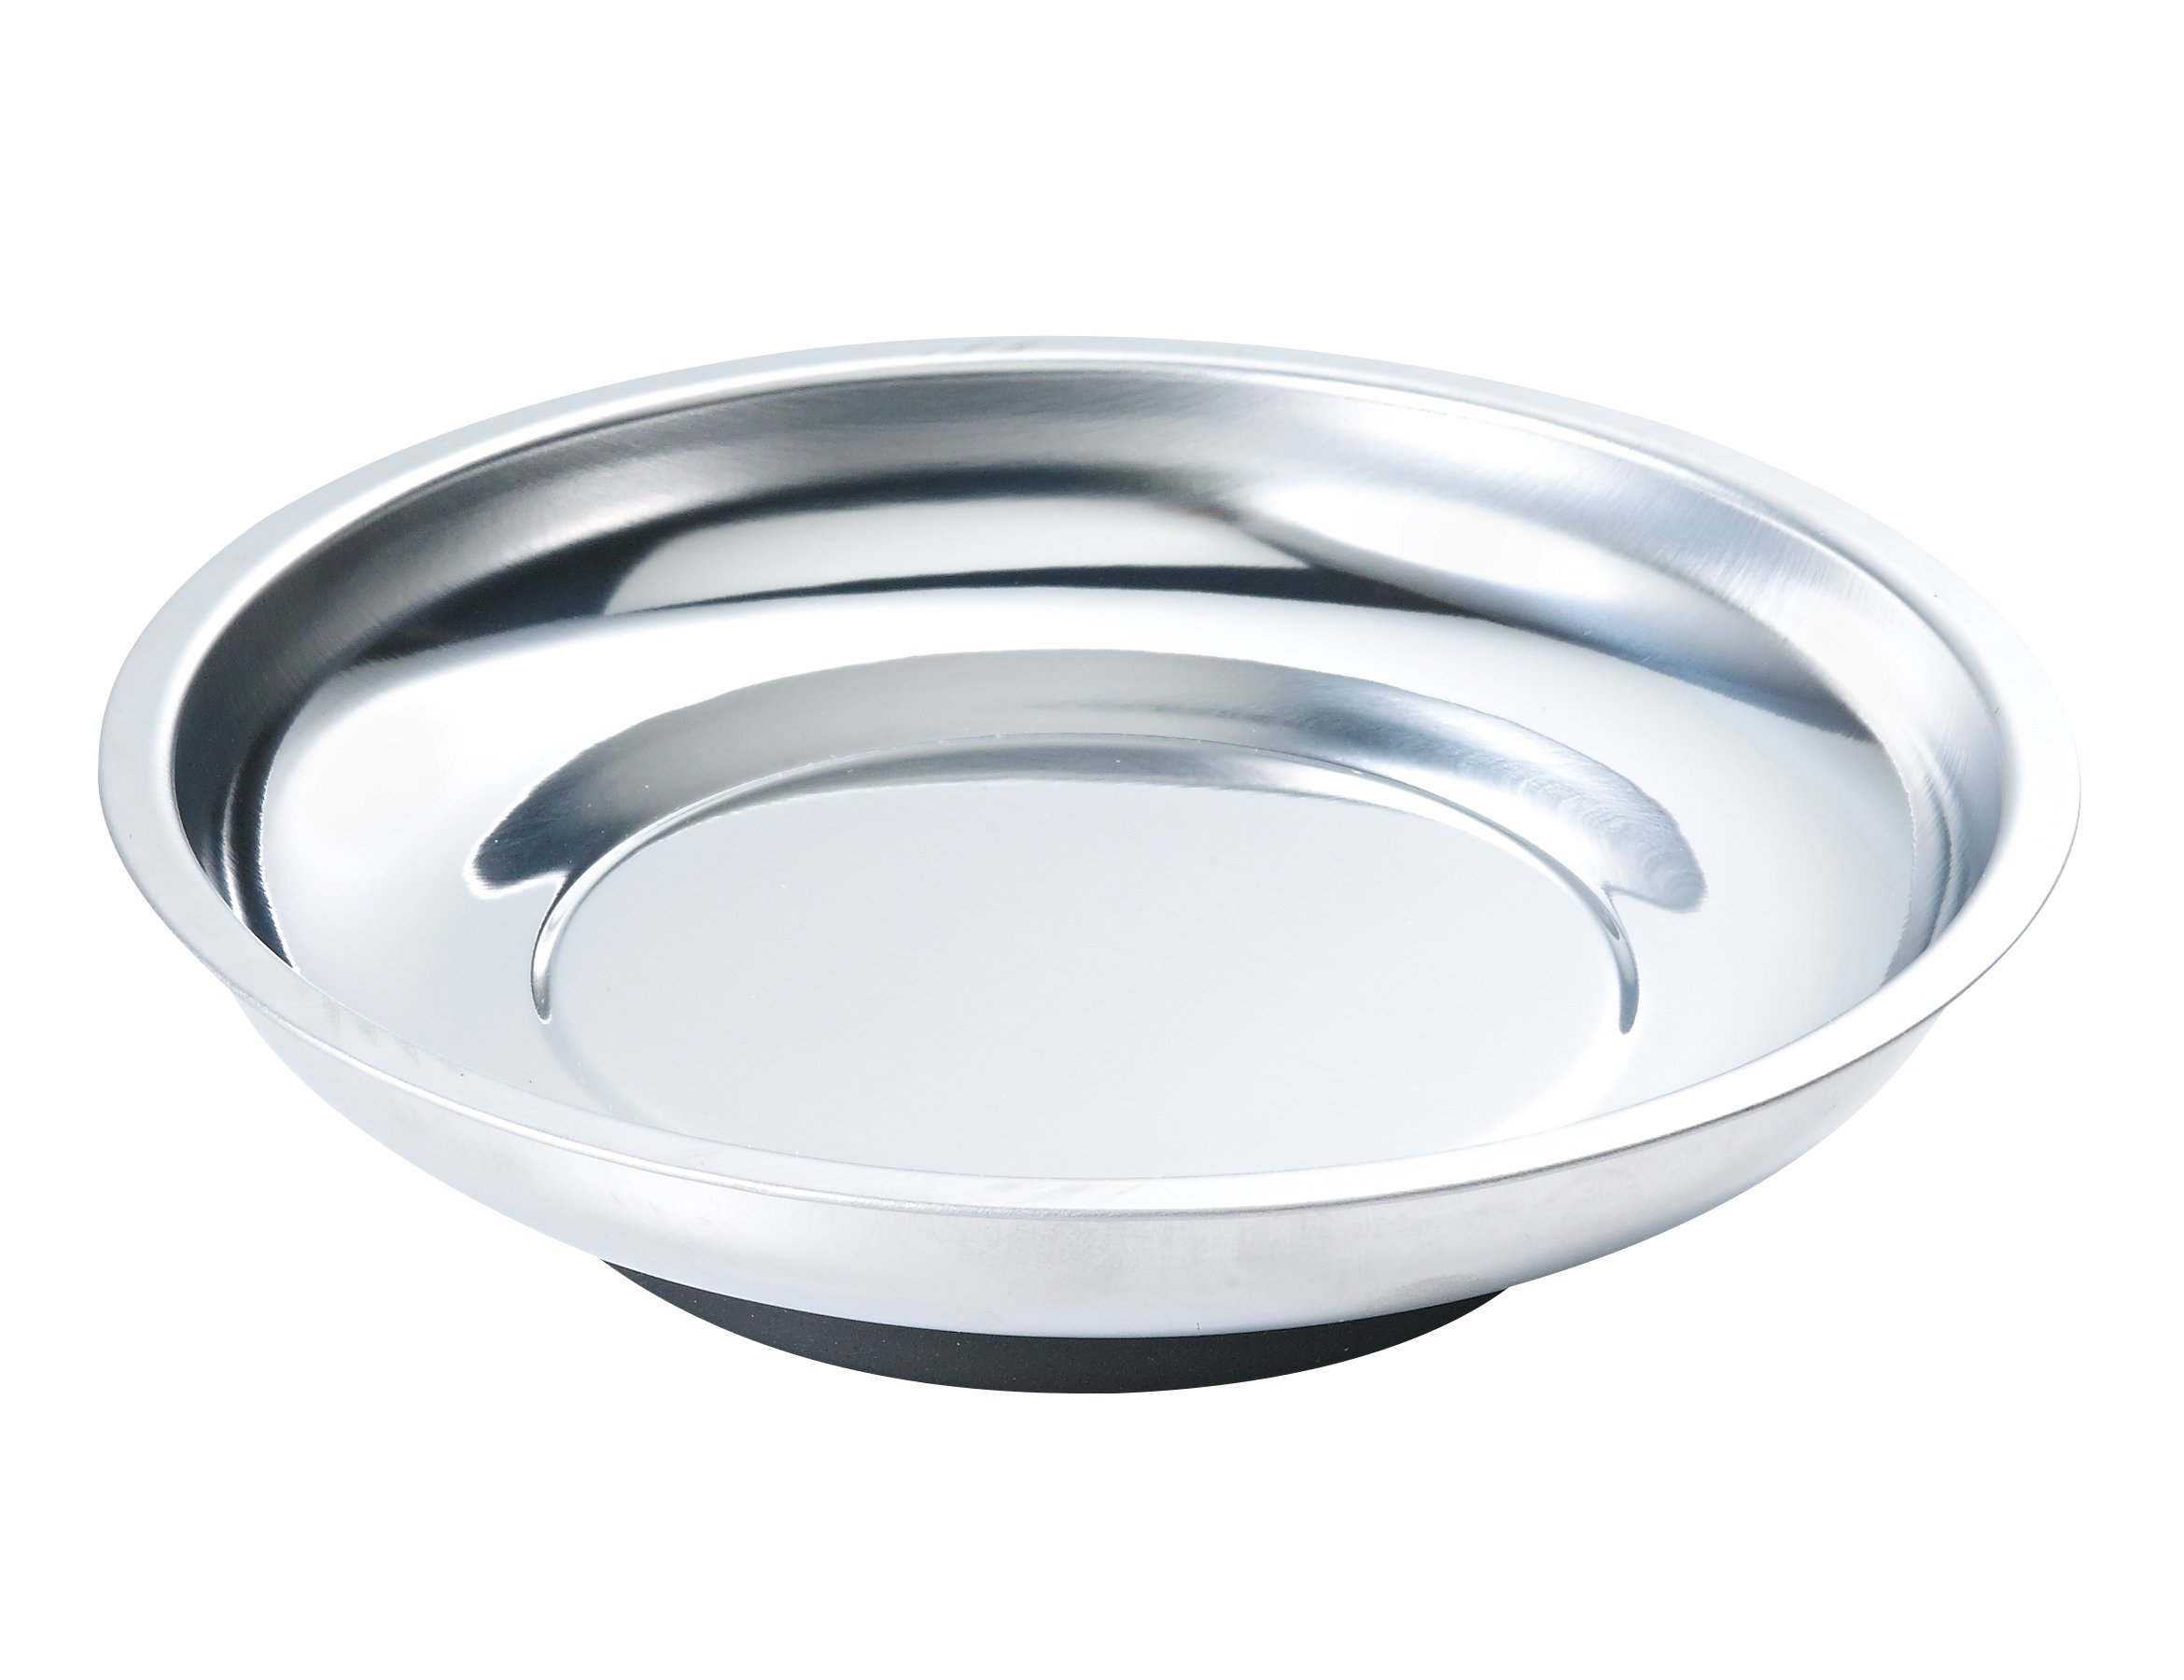 Arsenal 5925 Magnetic Tray Organizer, 6 inch, Round, Stainless